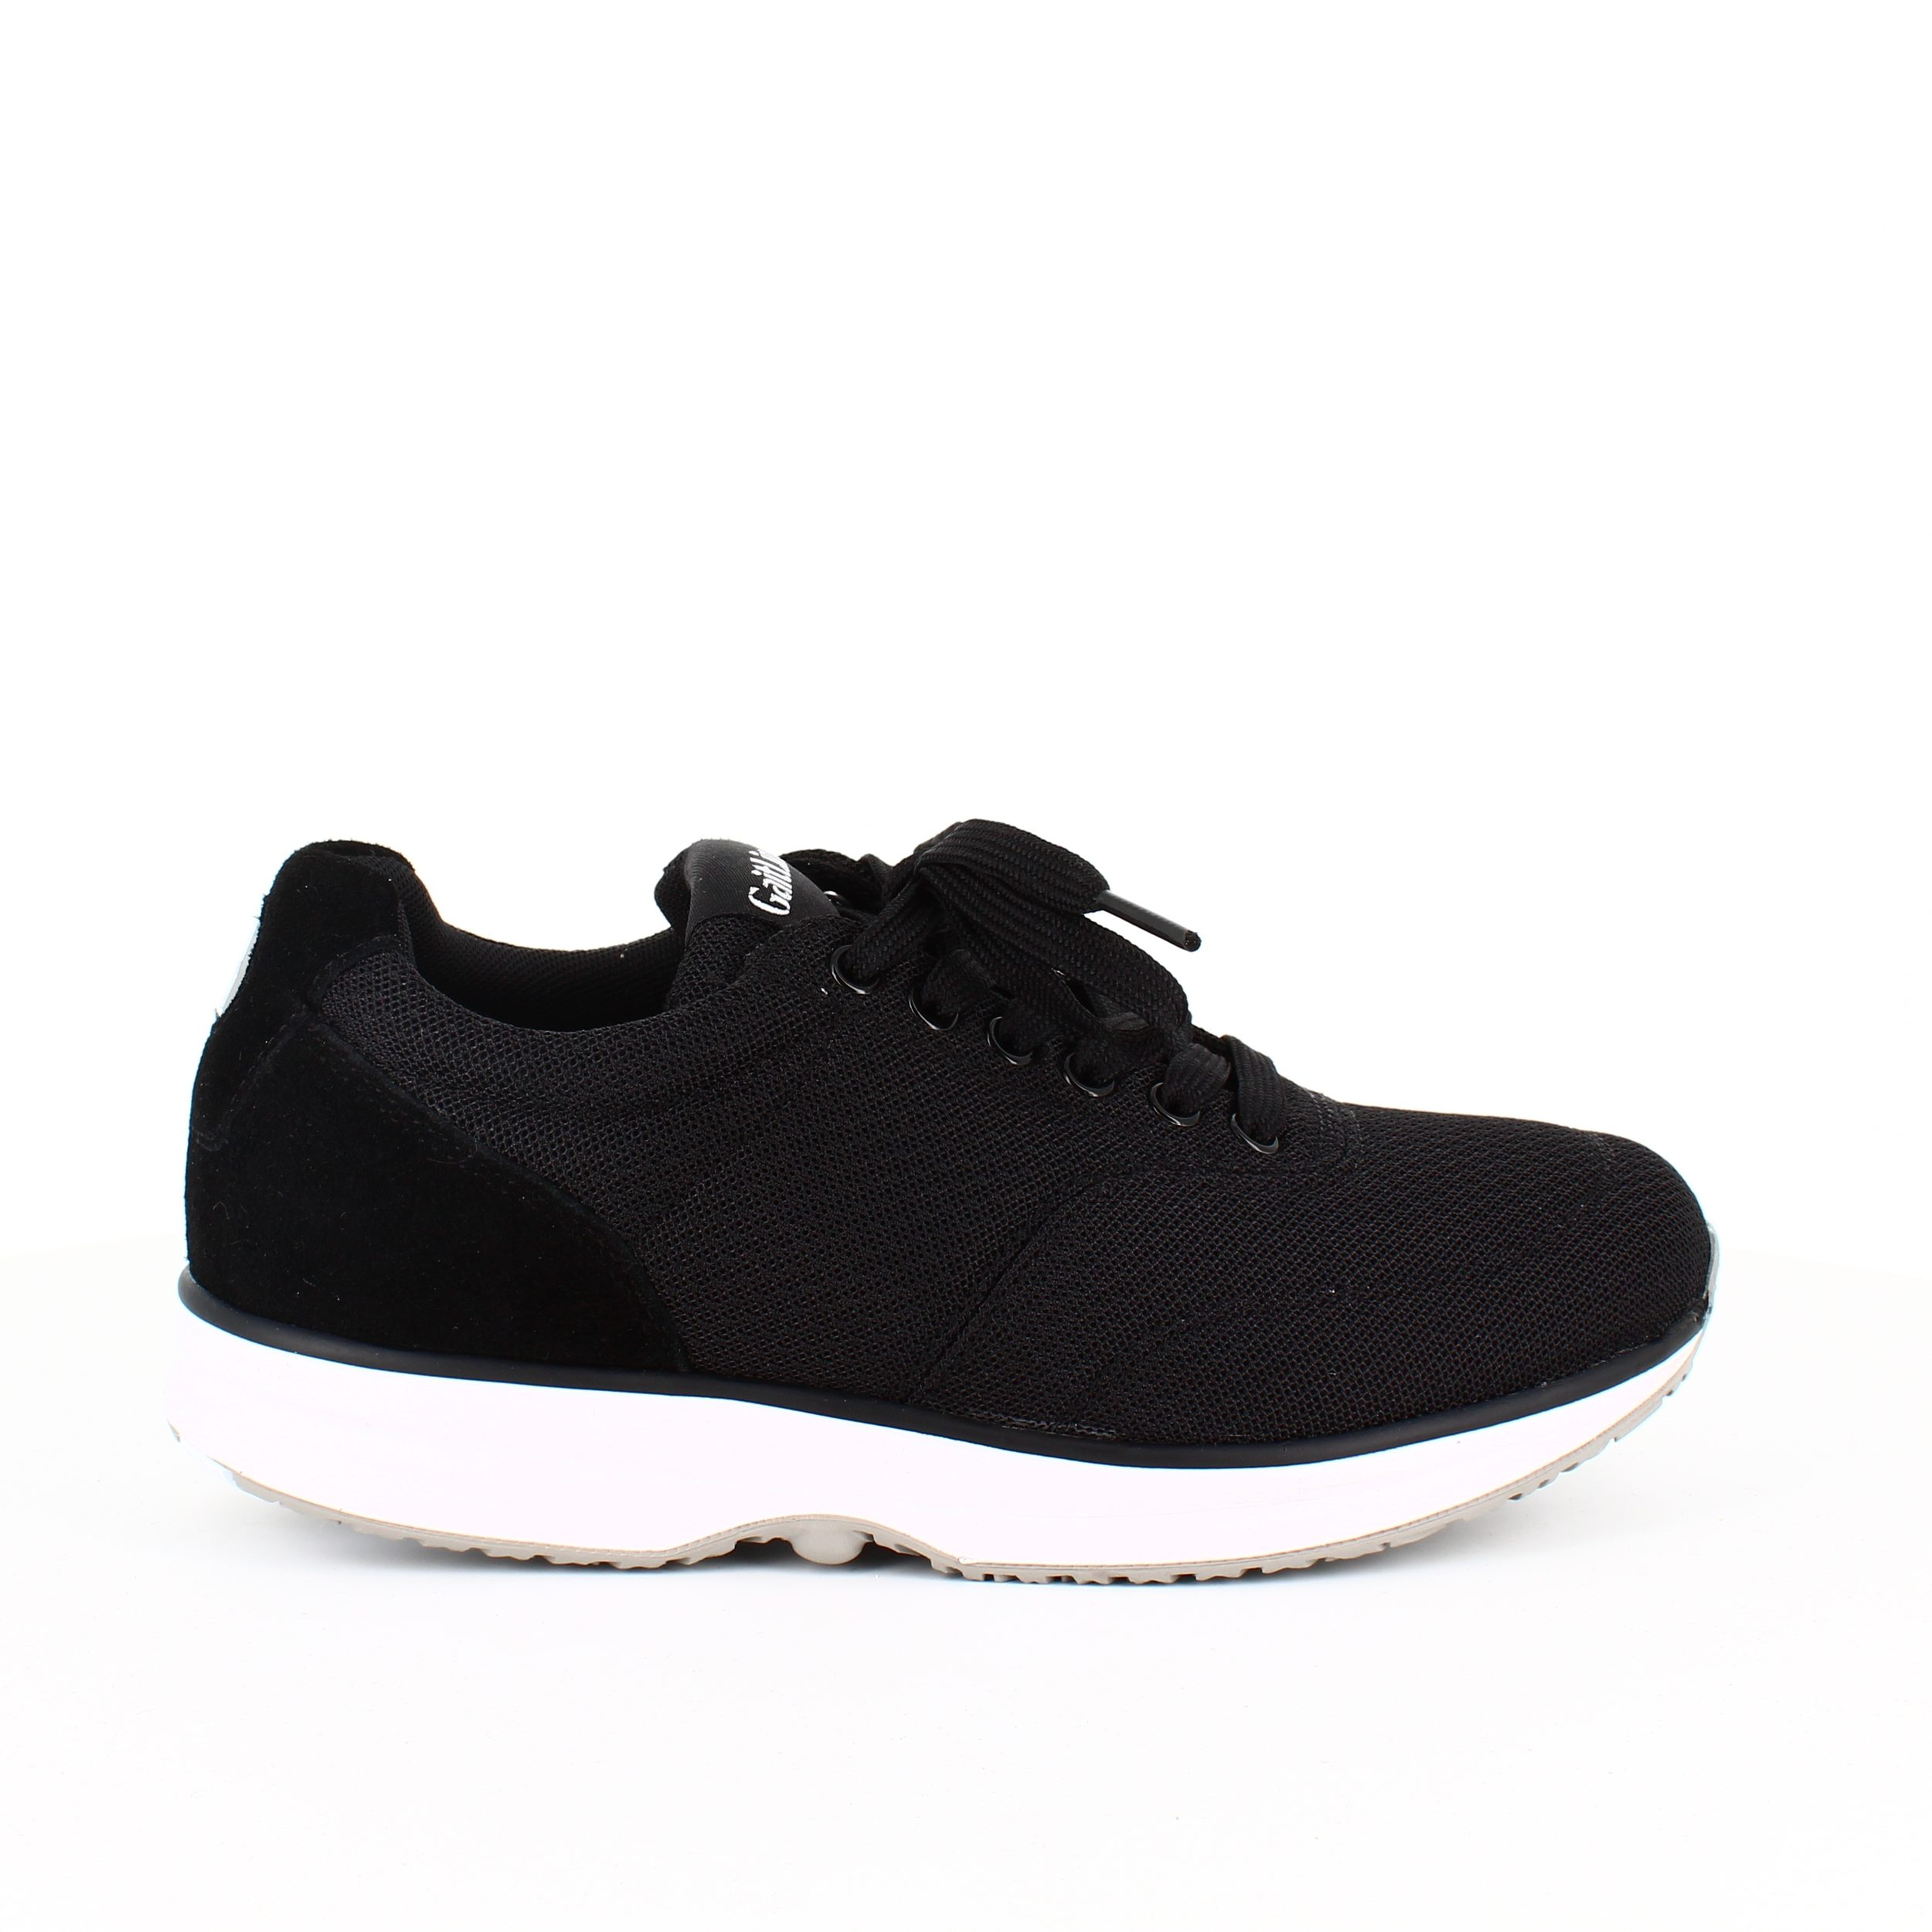 Image of   Flotte Sorte sneakers fra Gaitline - 47